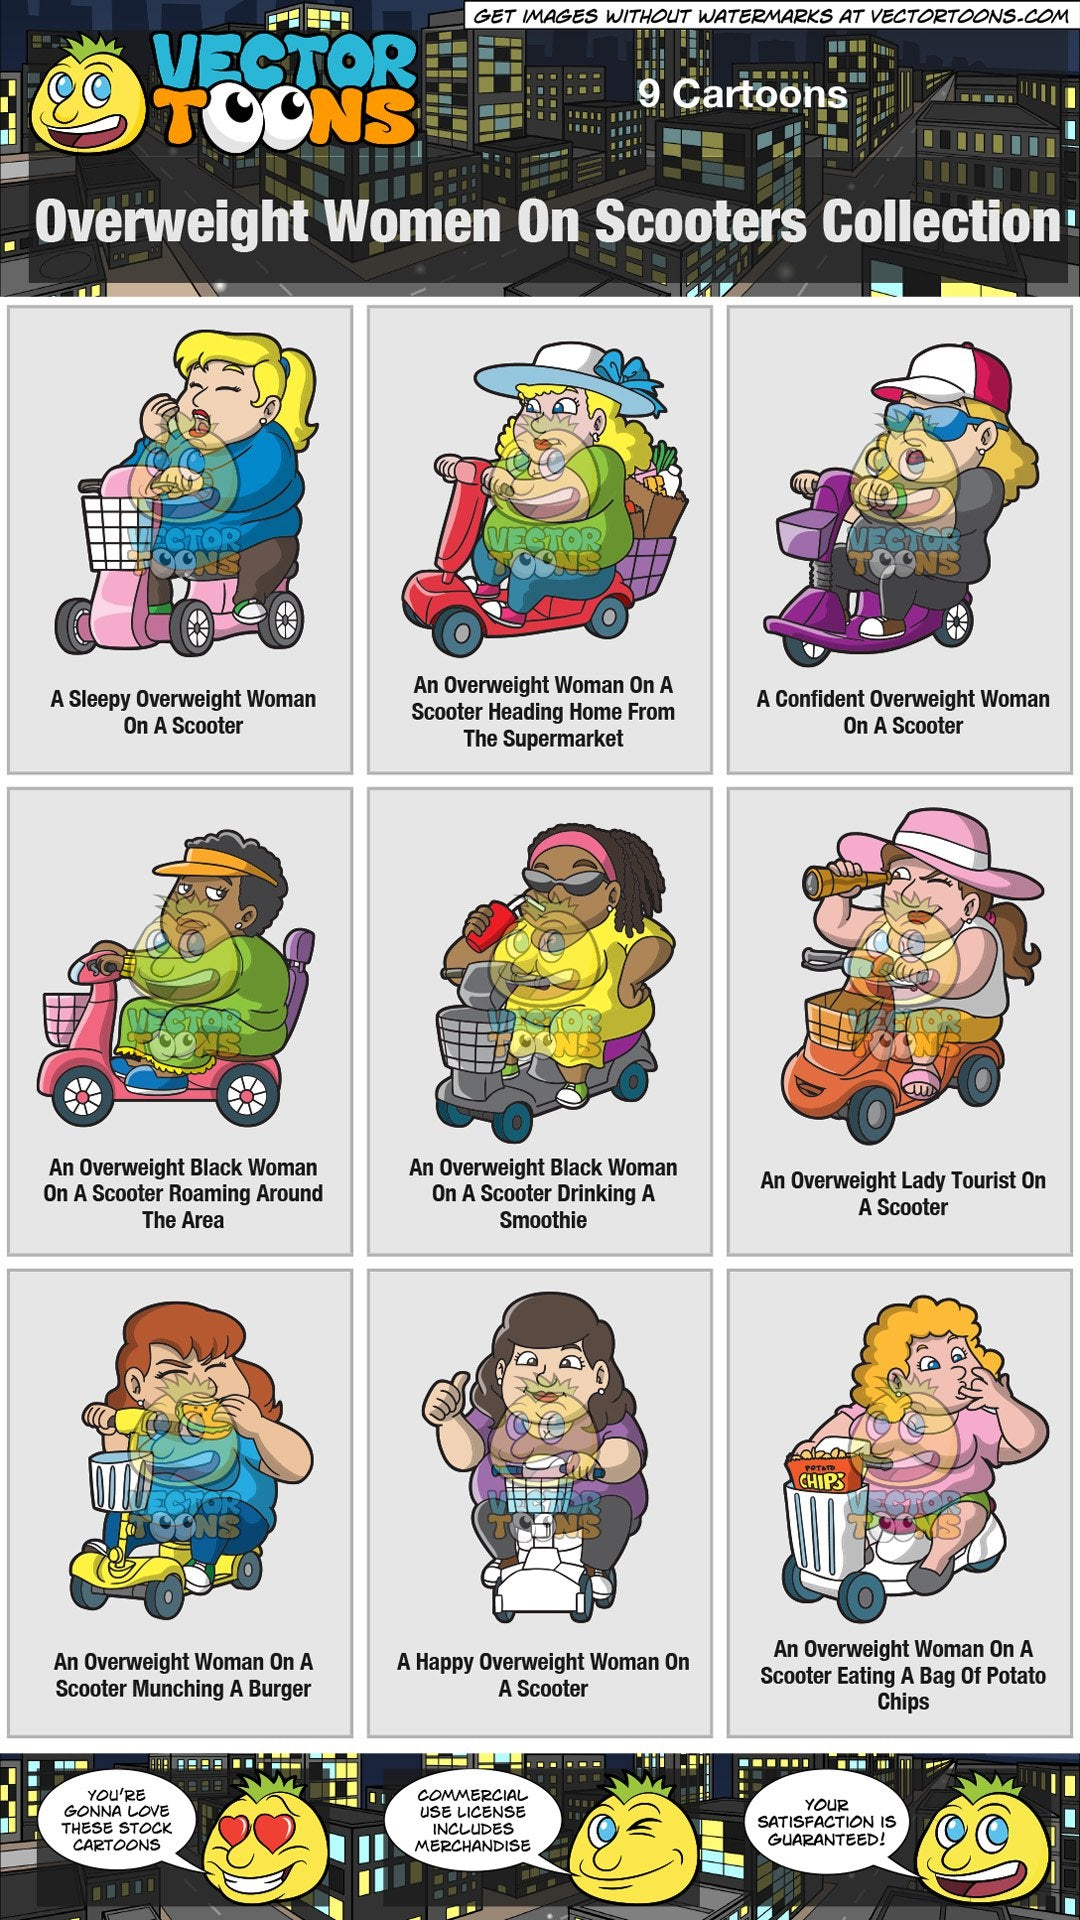 Overweight Women On Scooters Collection